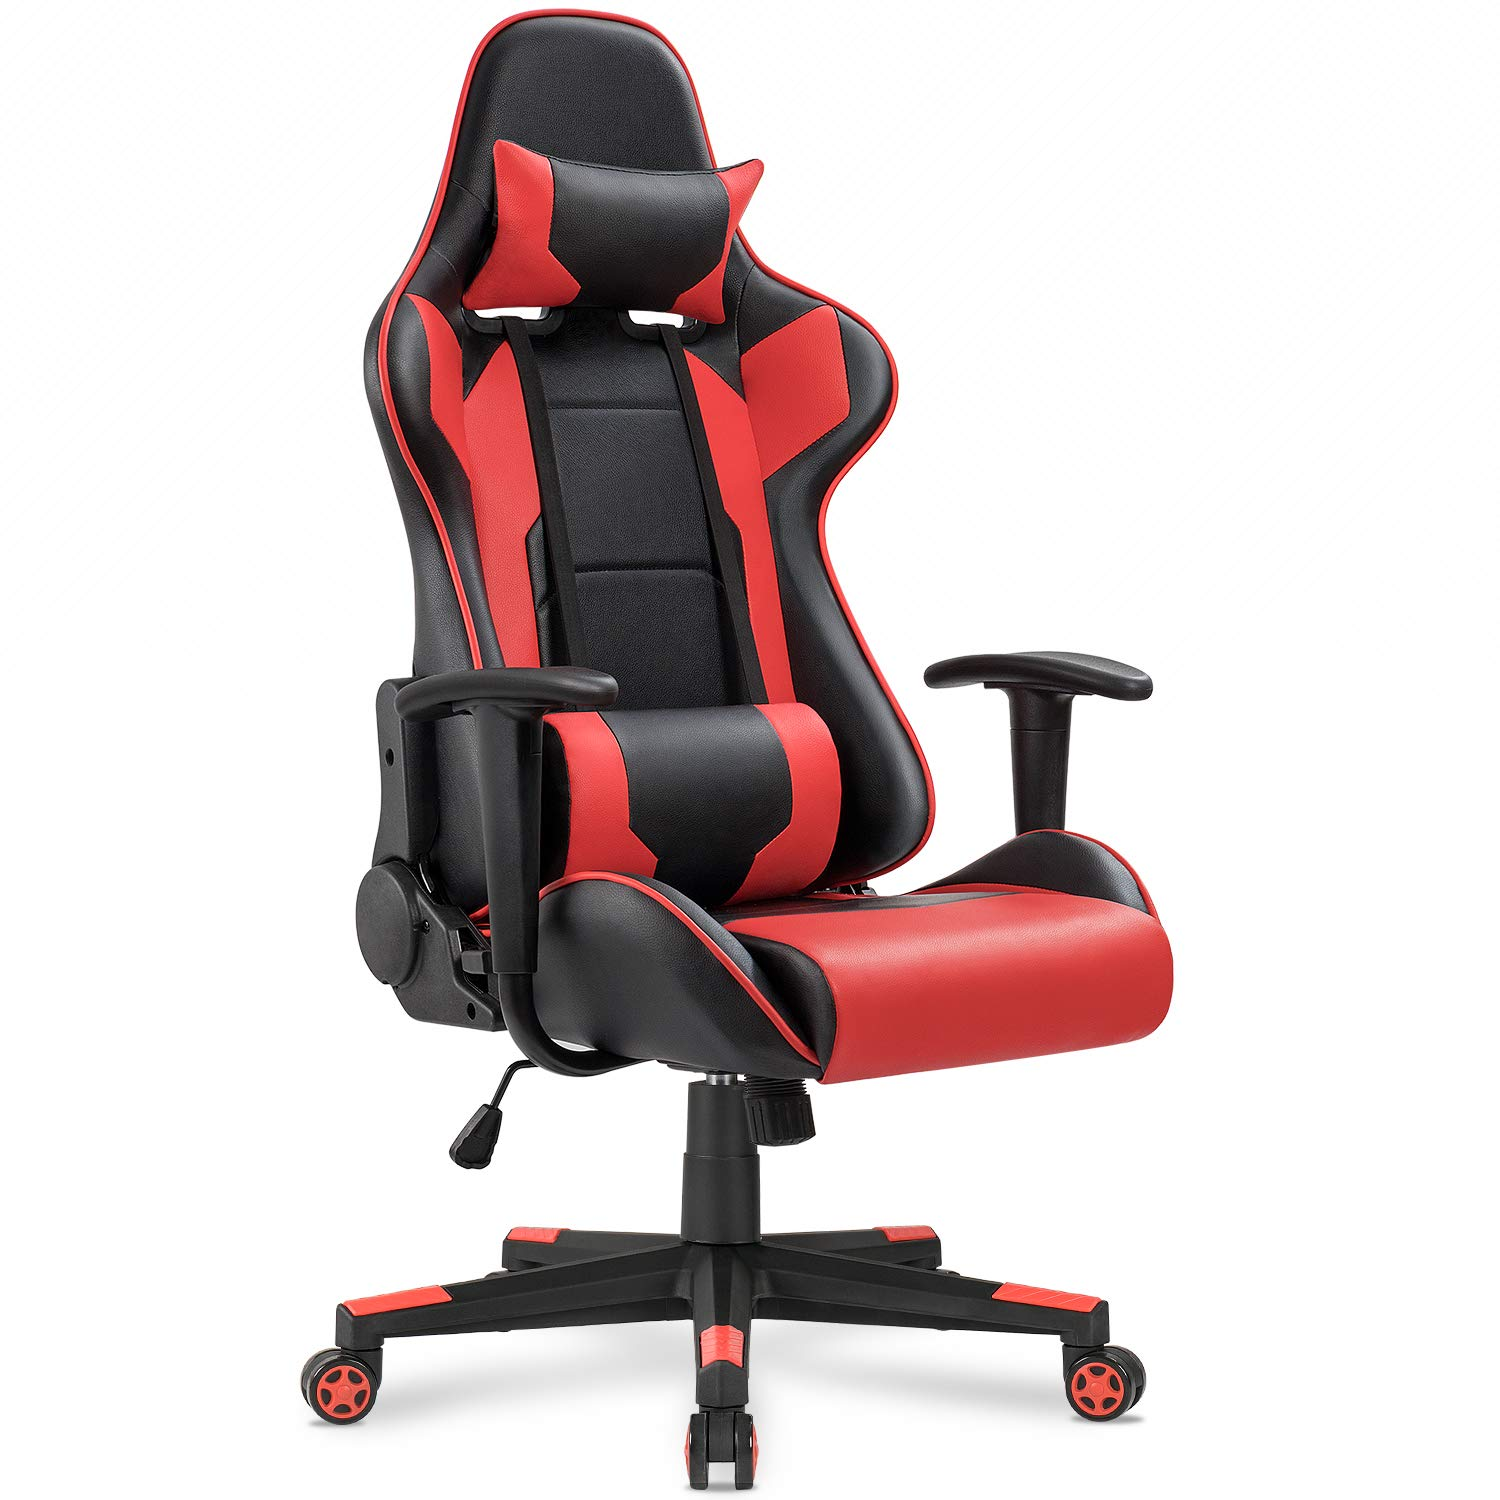 Homall Gaming Chair Office Chair High Back Computer Chair PU Leather Desk Chair PC Racing Executive Ergonomic Adjustable Swivel Task Chair with Headrest and Lumbar Support (Red)